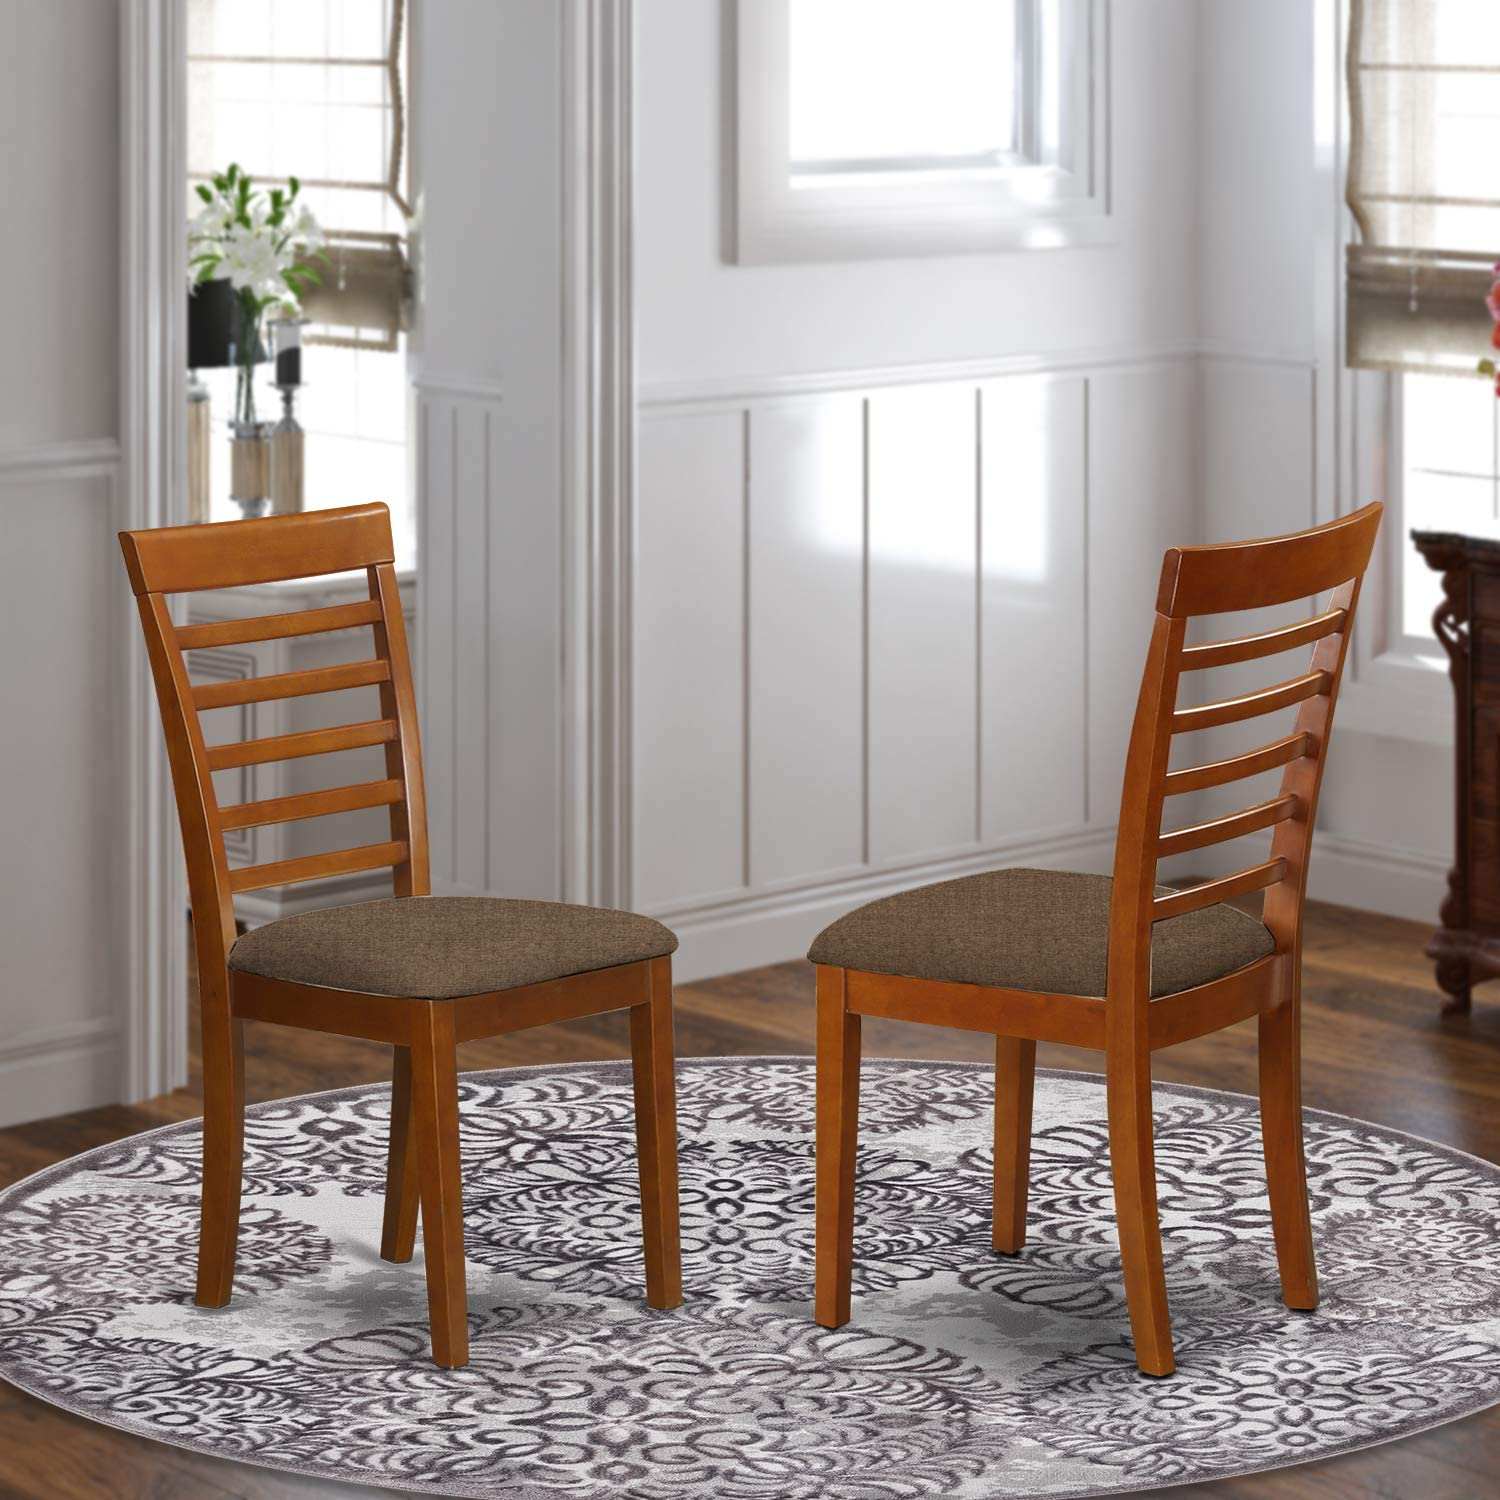 East West Furniture MLC-SBR-C Milan kitchen chairs